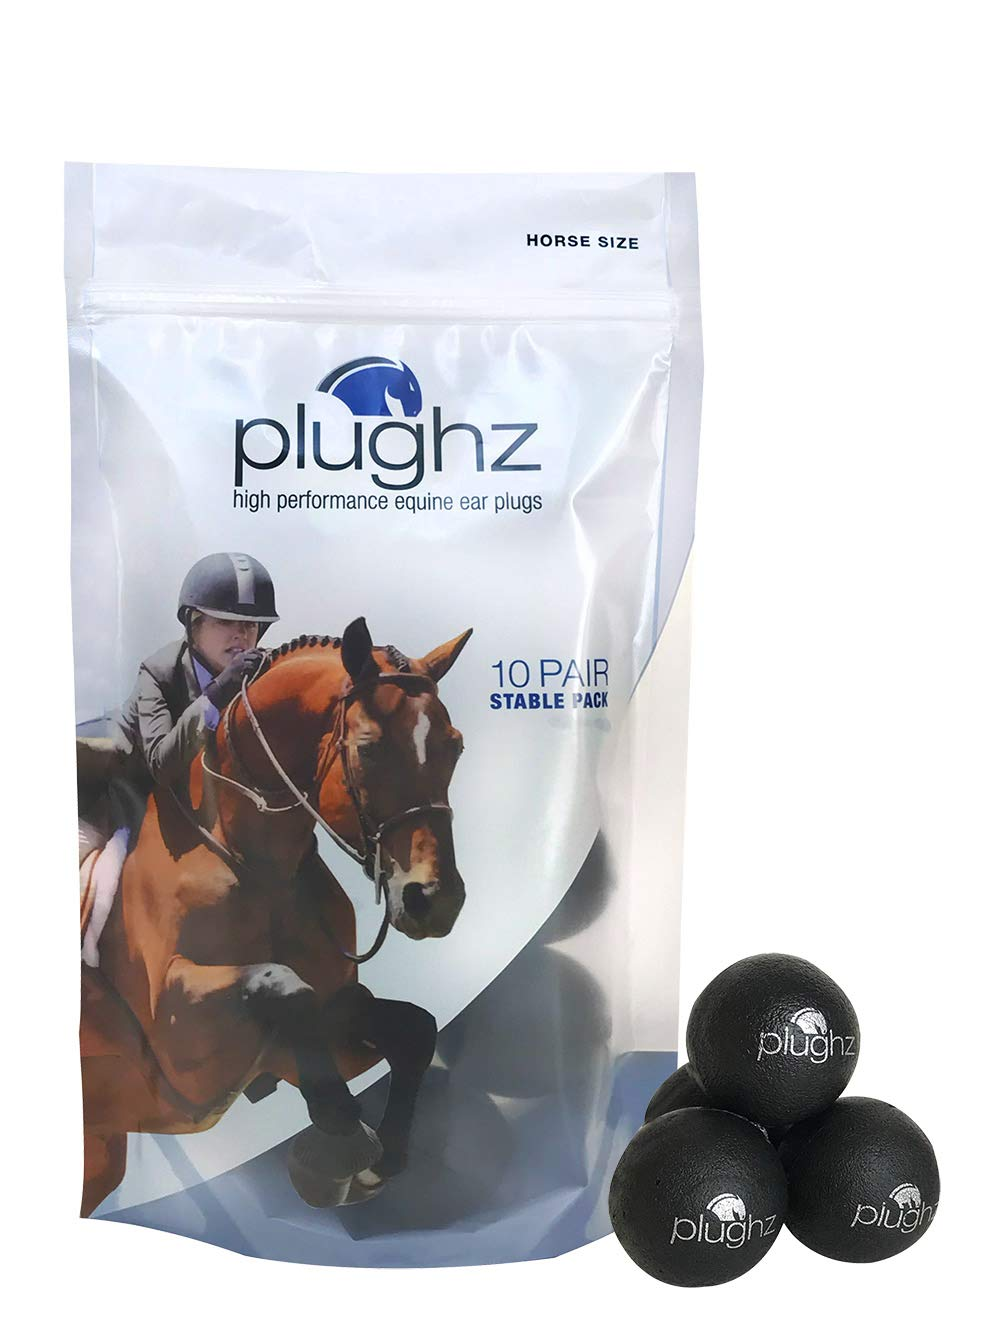 Plughz, 10 Pair Stable Pack Equine Ear Plugs, Horse Size